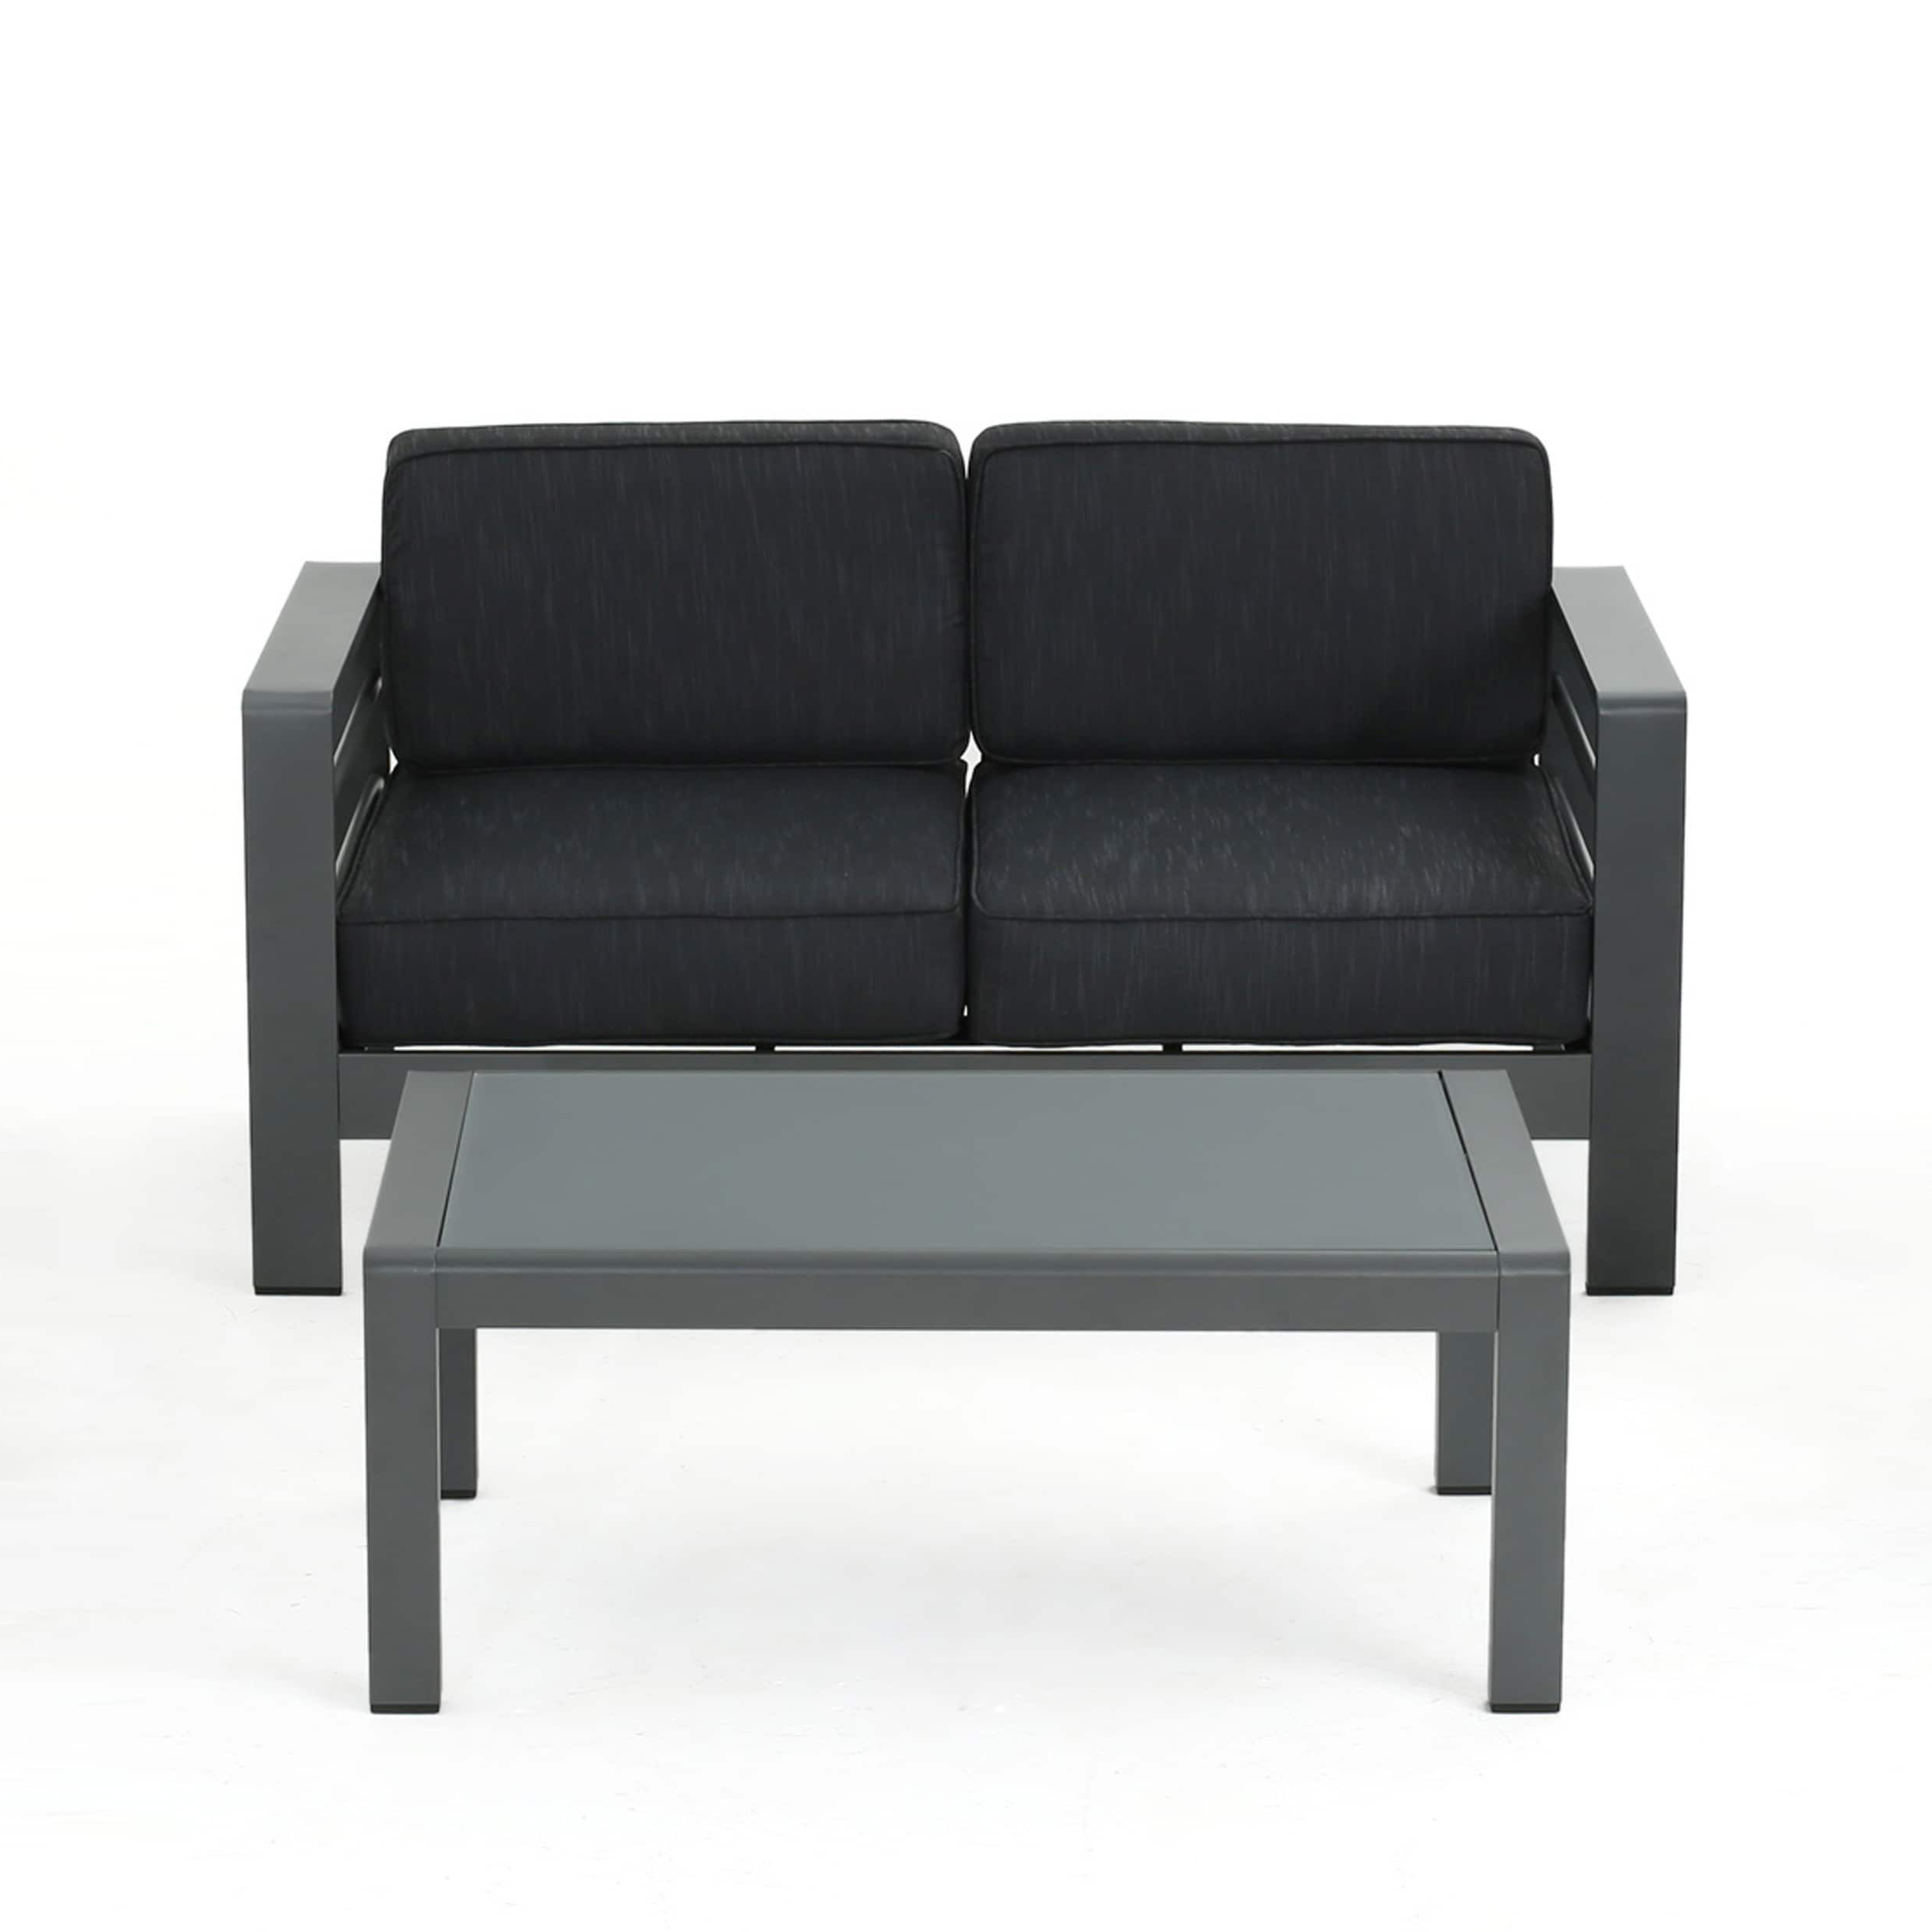 Famous Royalston Patio Sofas With Cushions Regarding Cape Coral Outdoor Aluminum 2 Piece Set With Cushions (View 7 of 20)